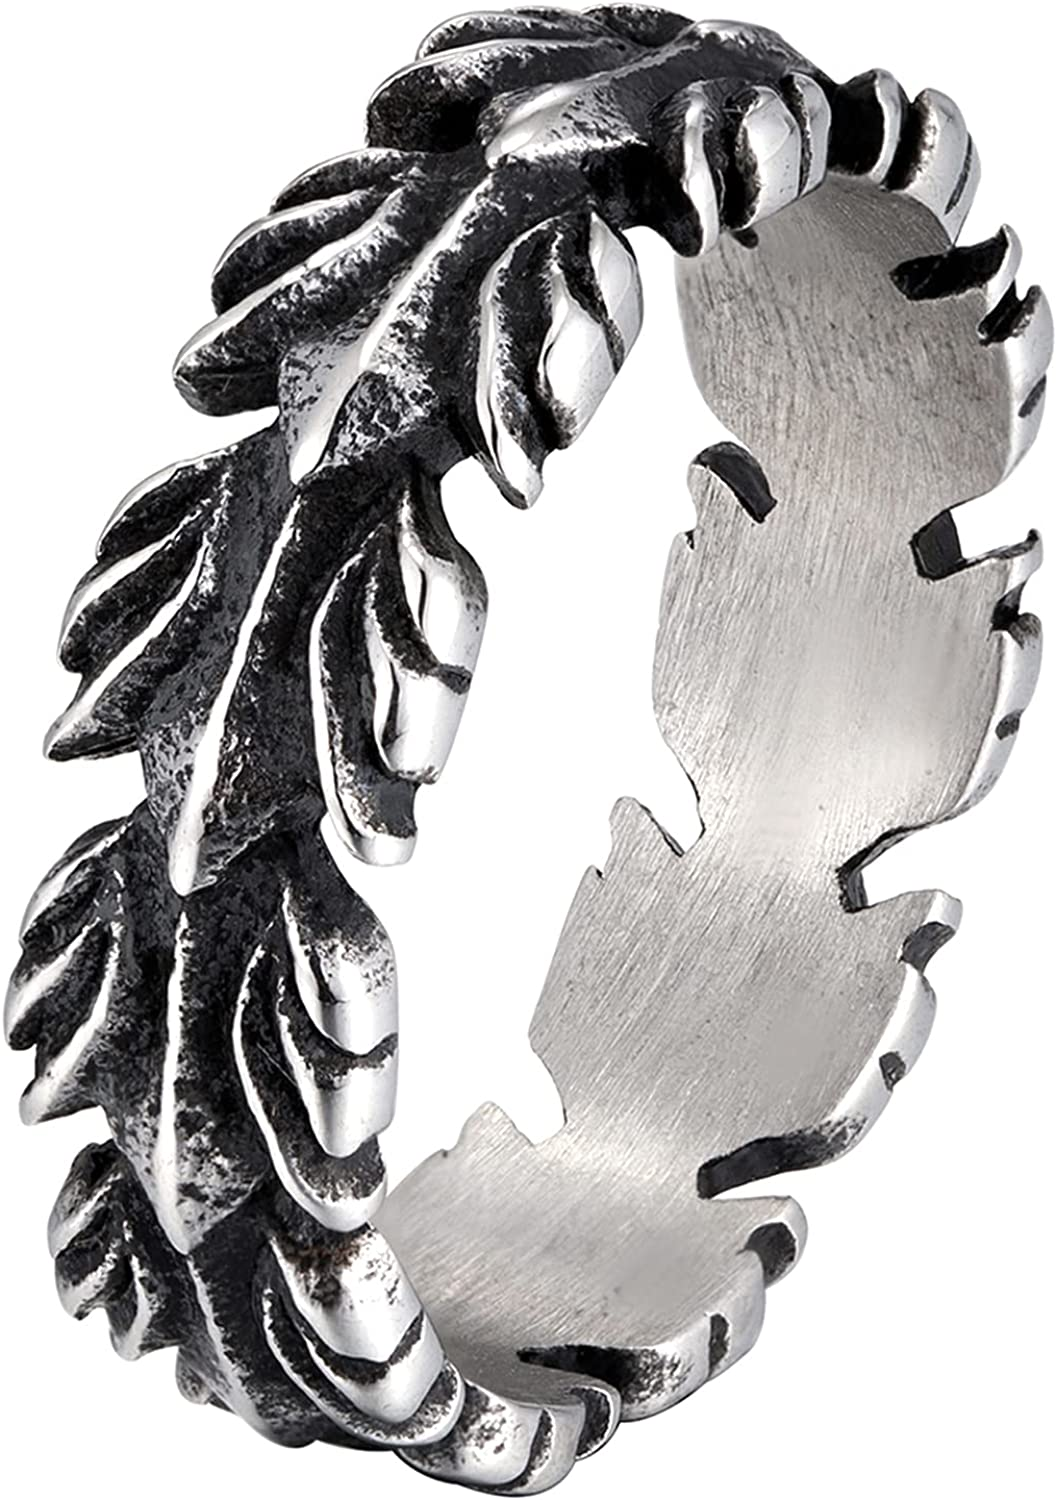 Rings fro Women Stainless Steel Feathers Vintage Band Rings Jewelry US SIZE 12